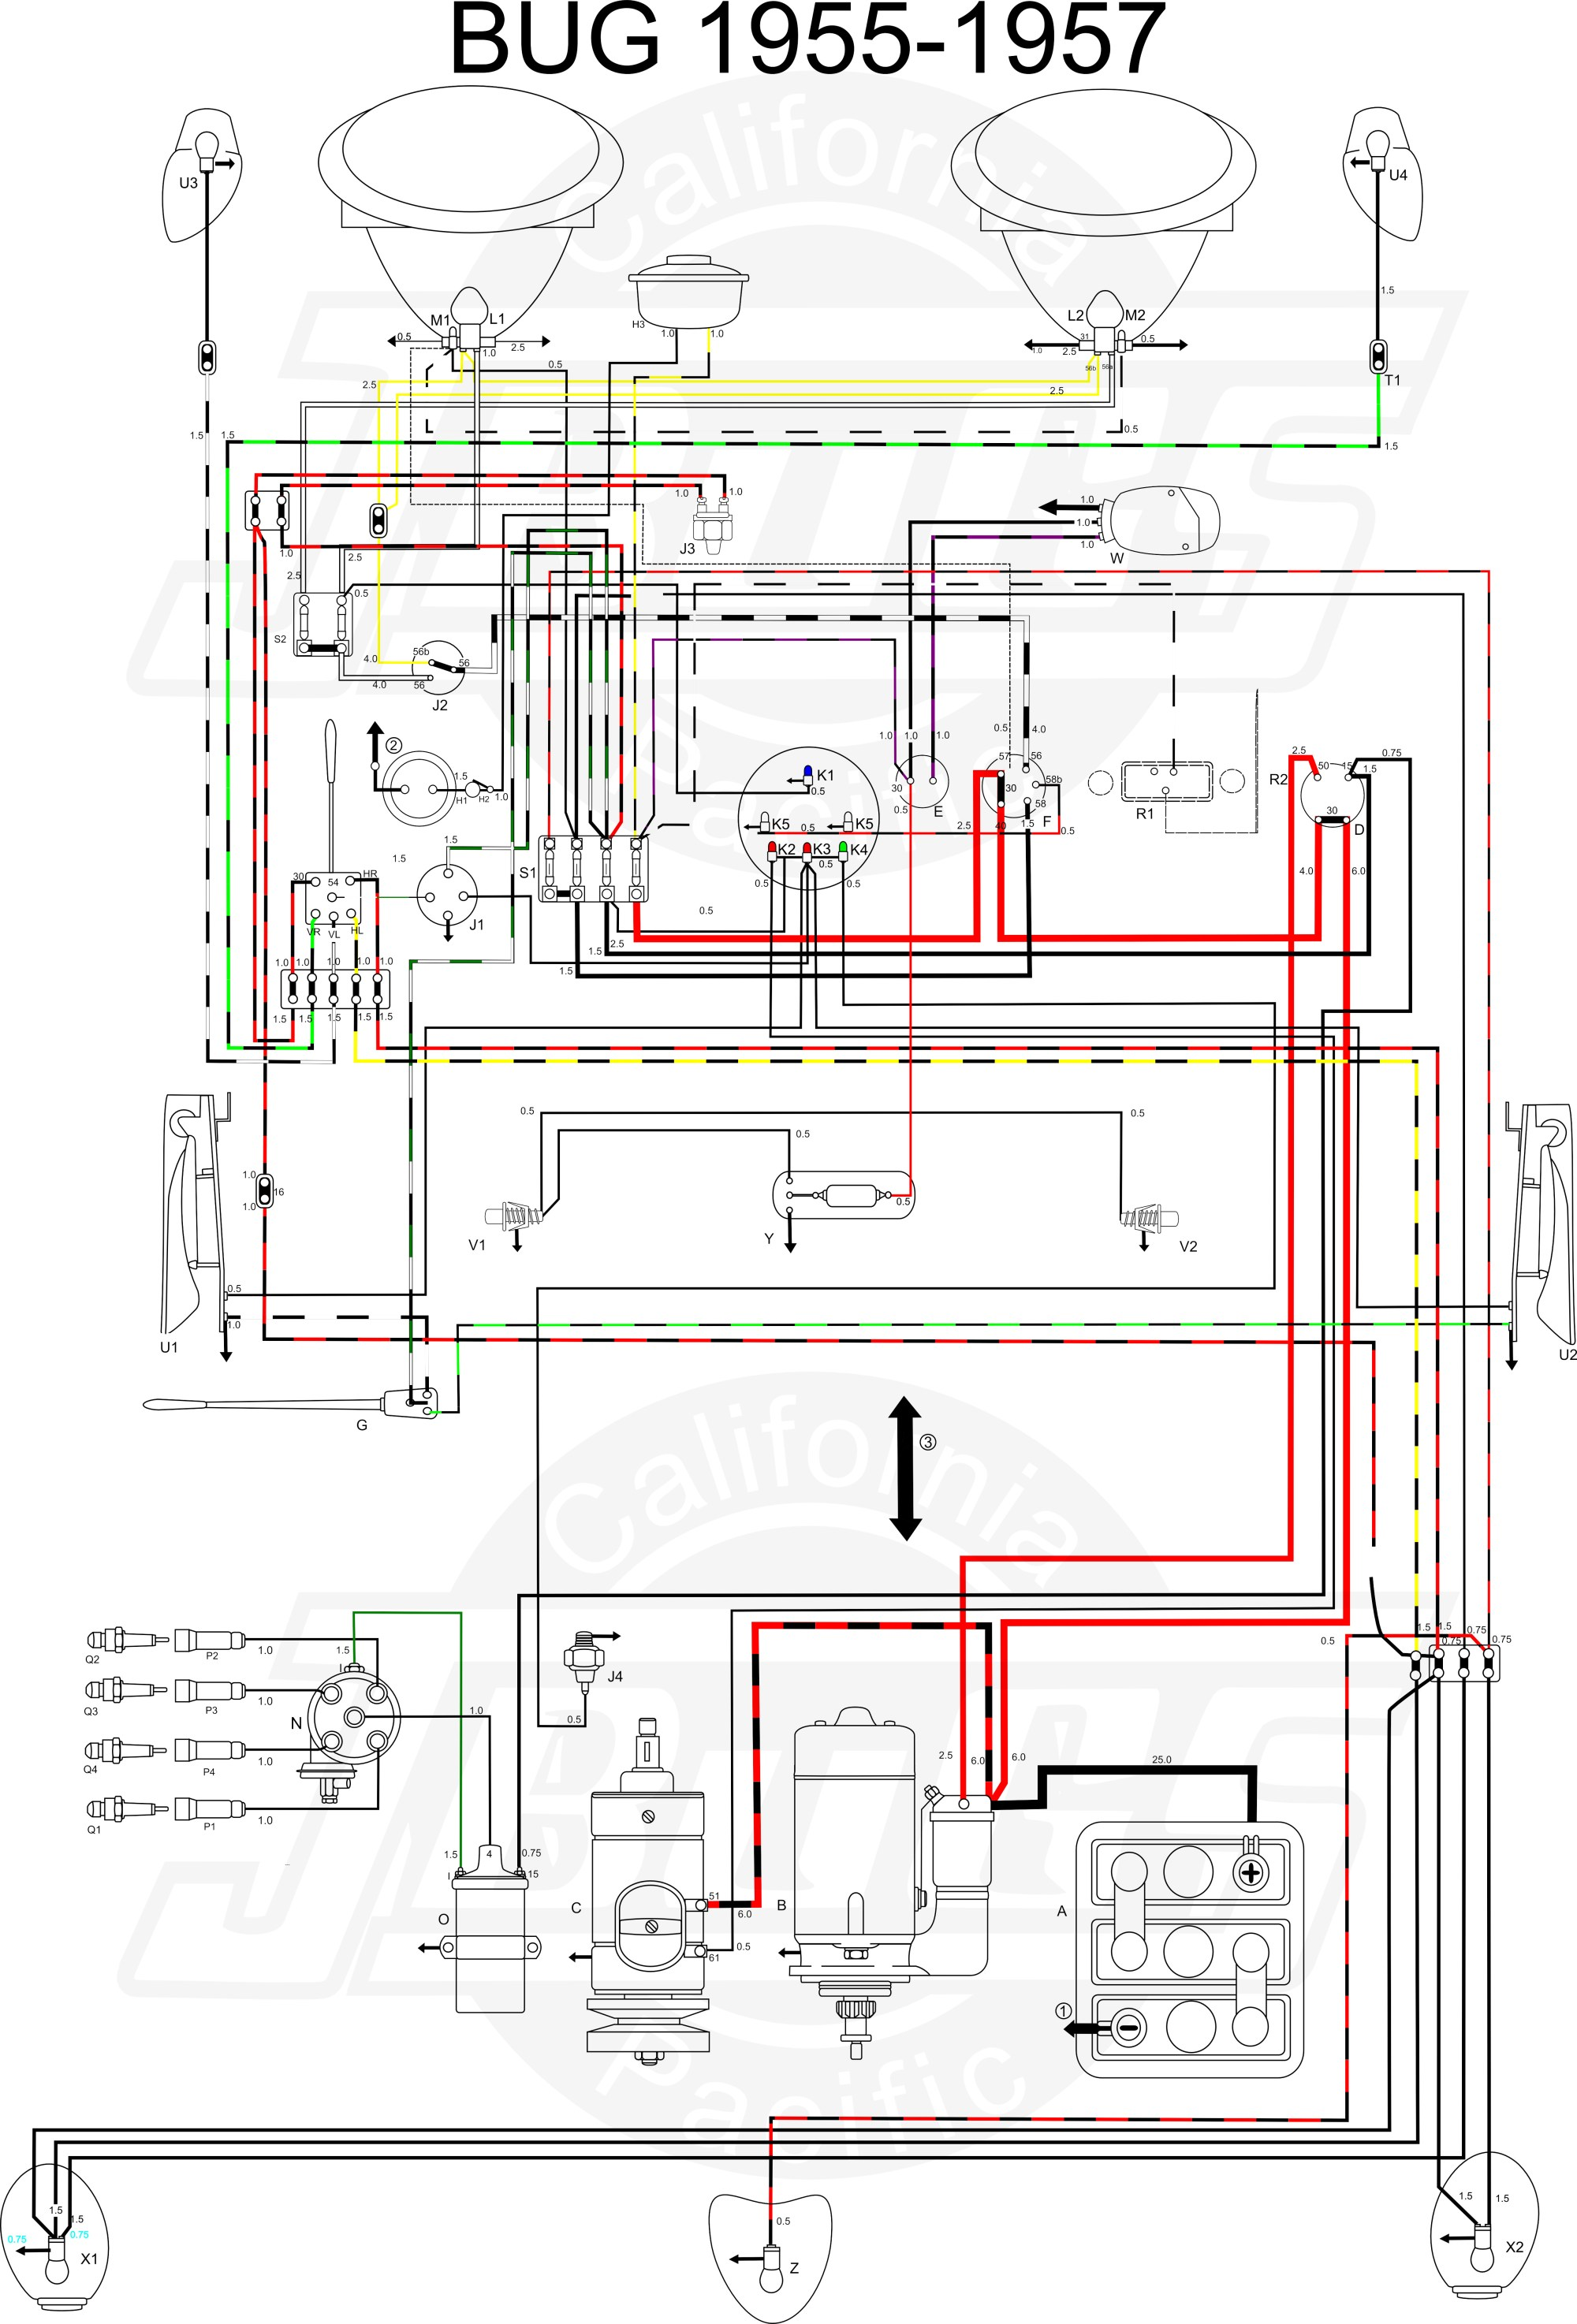 hight resolution of vw beetle alternator wiring scematic wiring diagram post 1972 vw beetle alternator wiring diagram